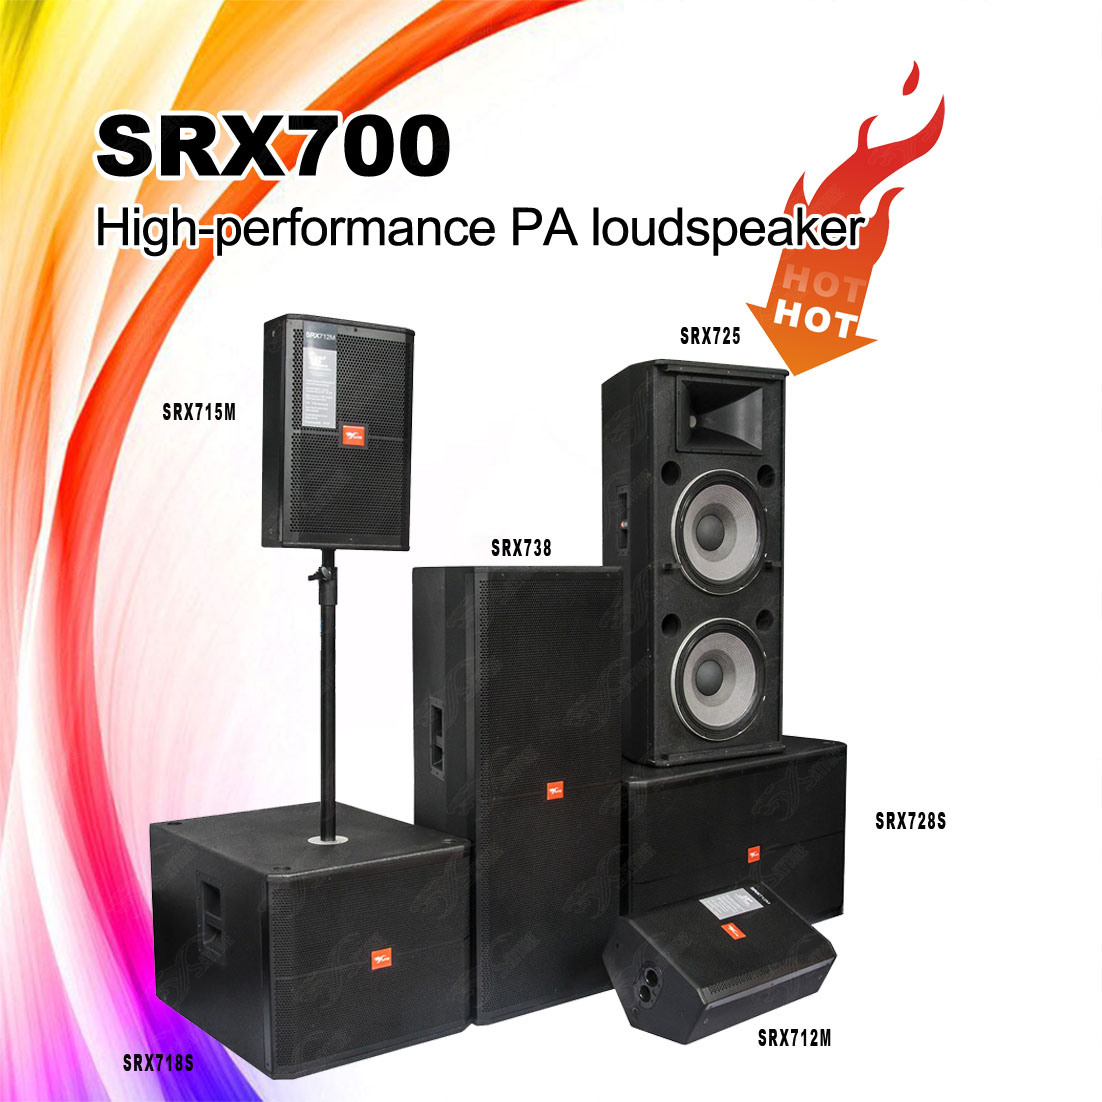 Speaker Box of Srx700 Series Professional PA Speaker